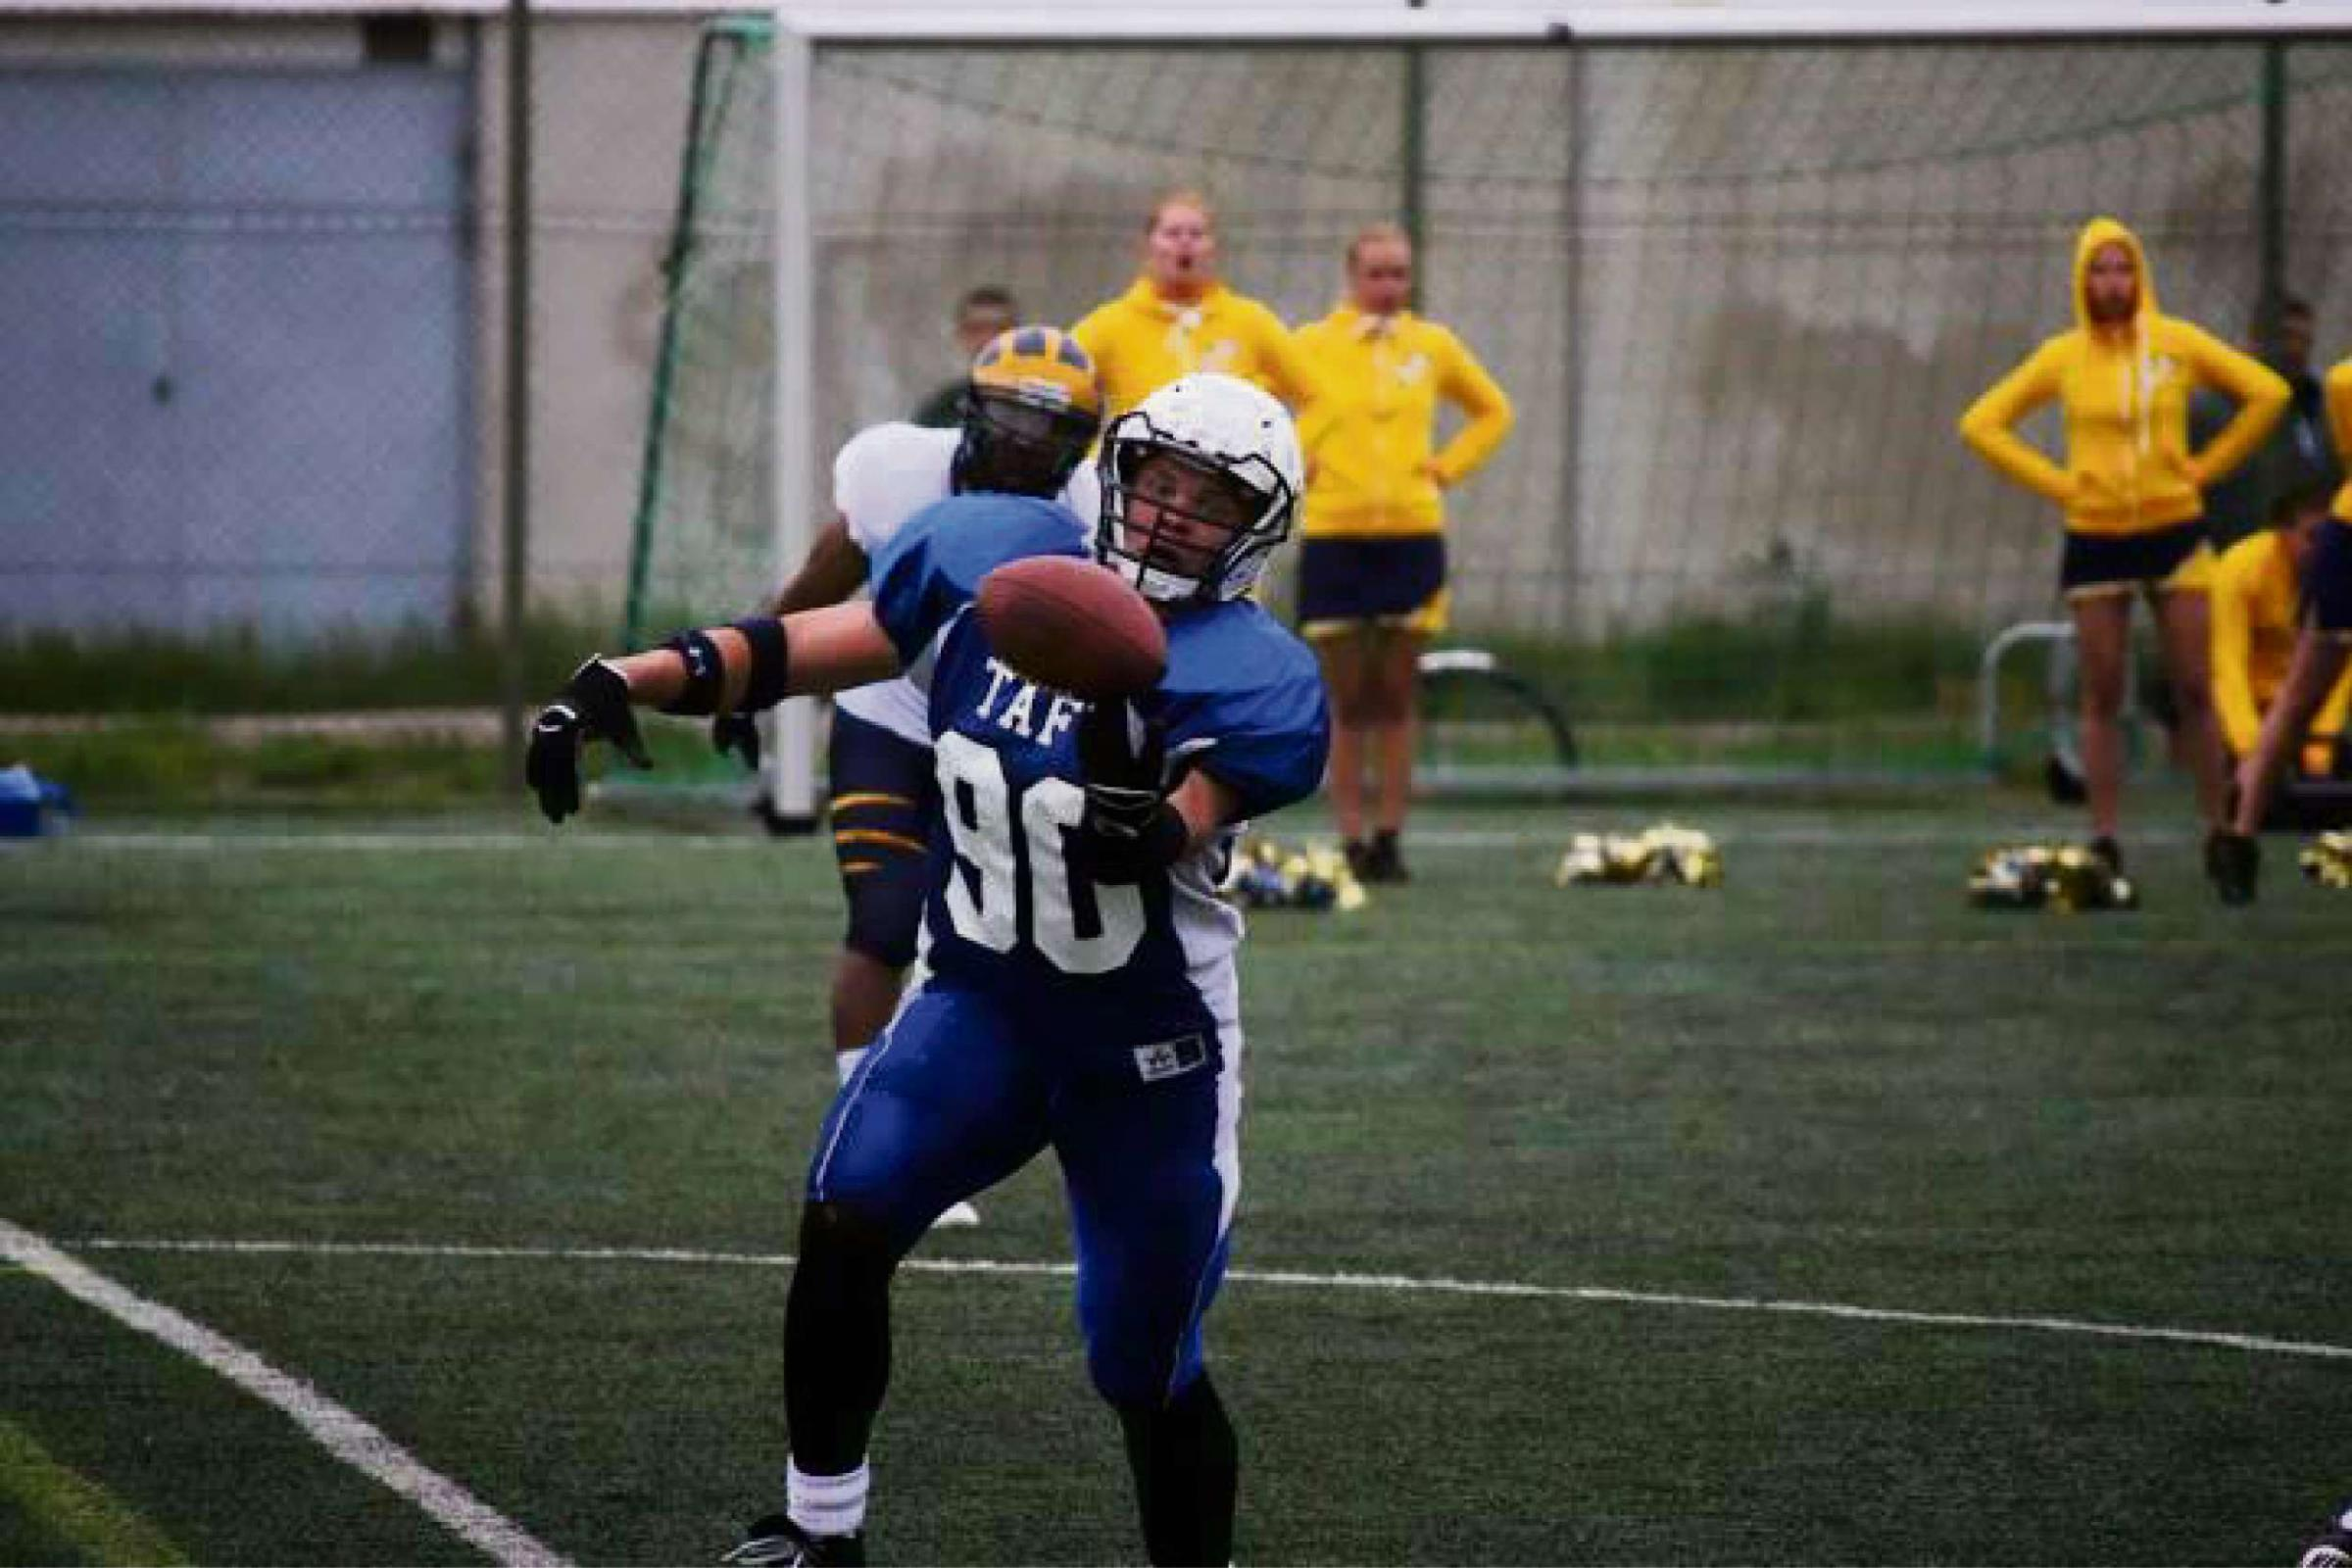 American footballer Okko Outinen in action